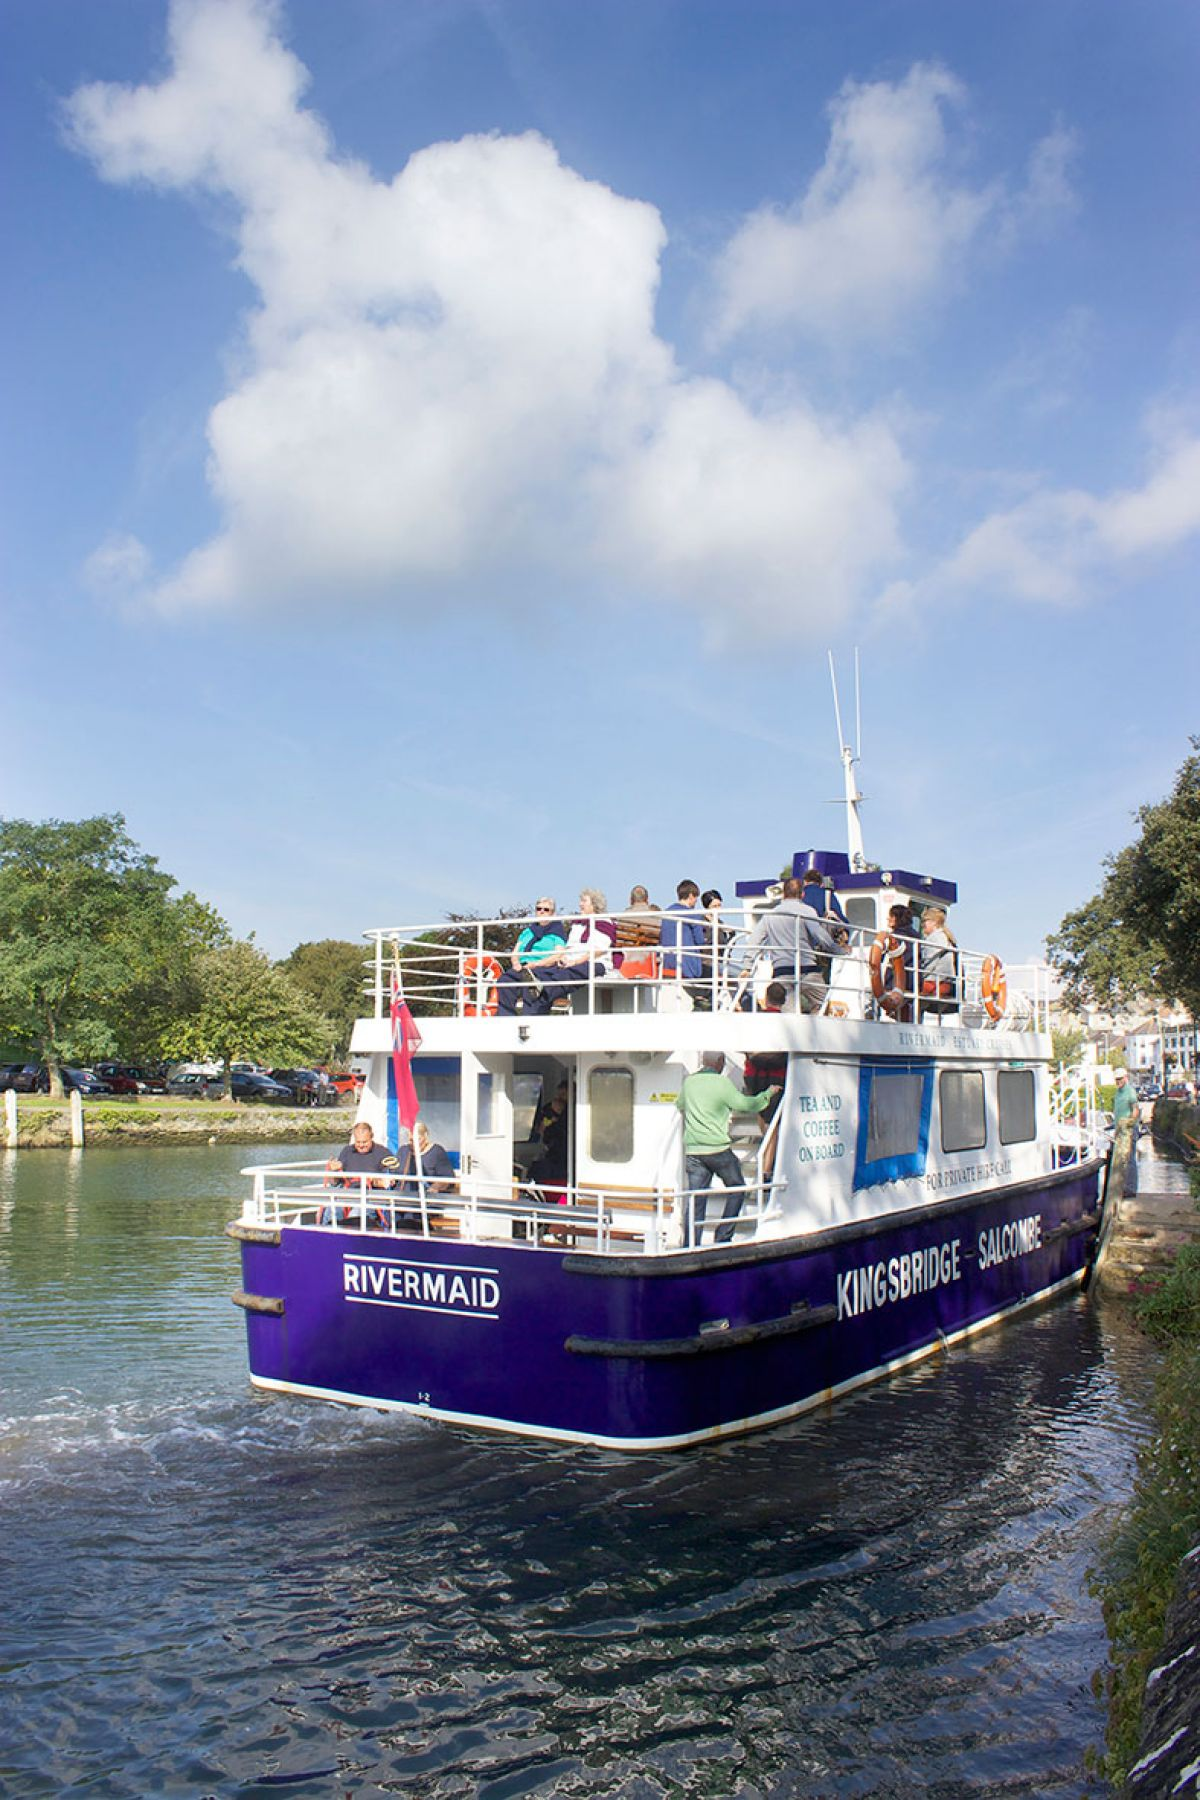 Rivermaid Ferry